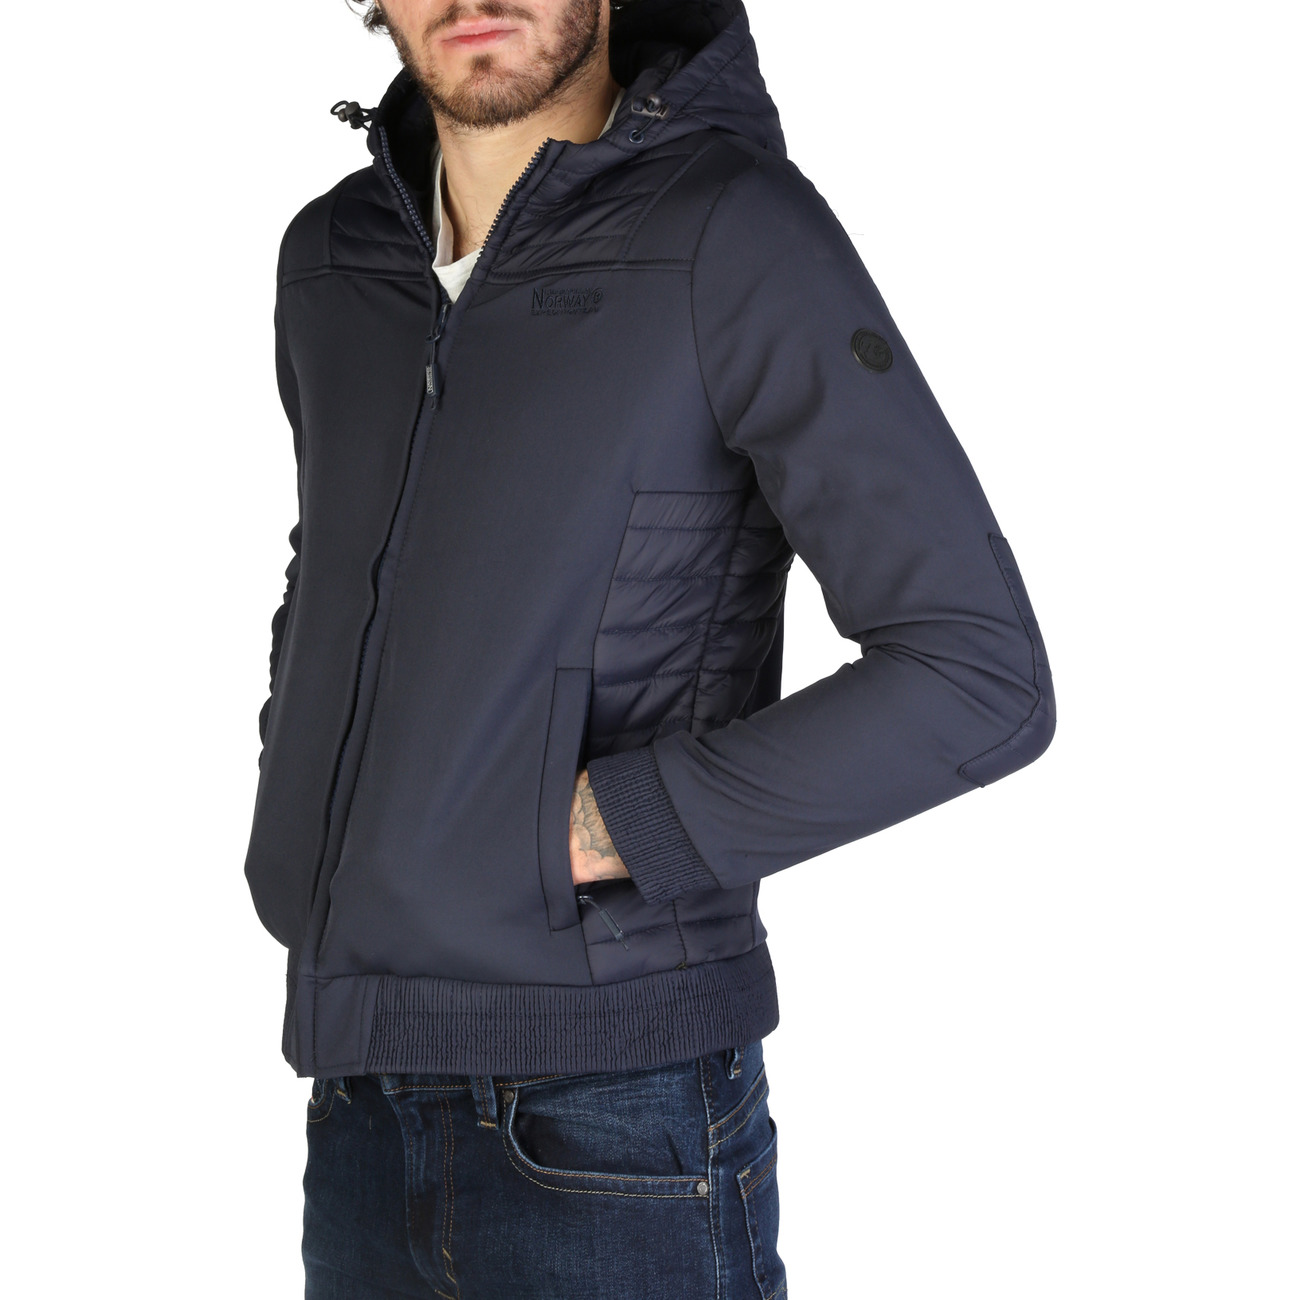 man Softshell Homme Automne Geographical Veste Chaleur Norway fOqXnw1